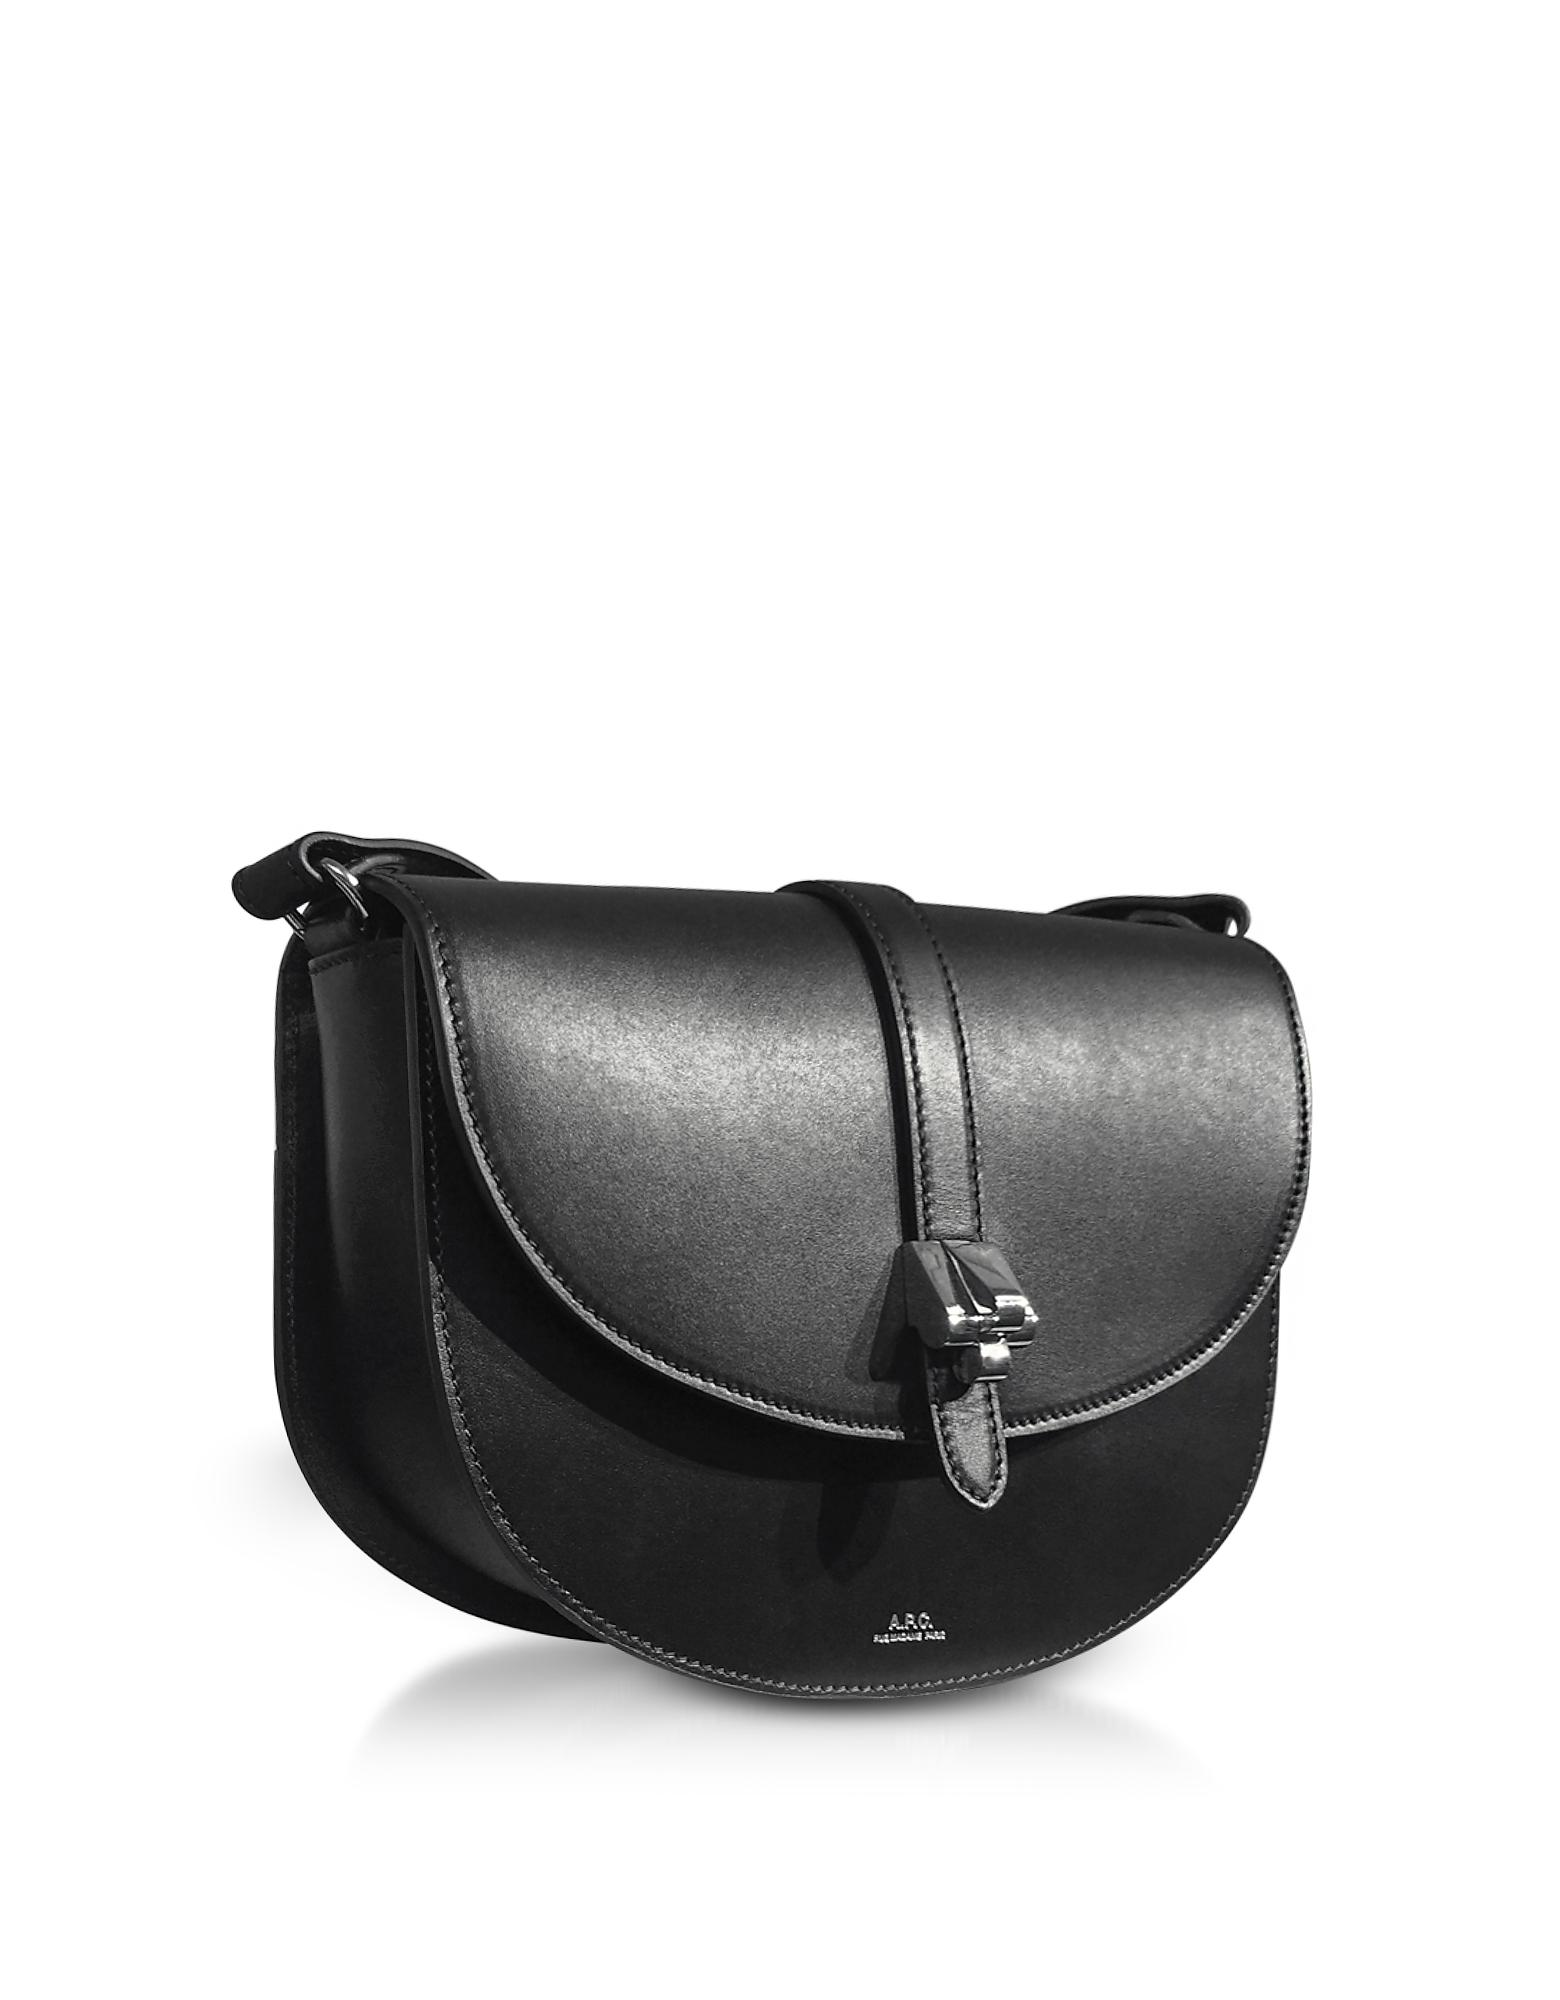 Isilde Bag in Black Smooth Shiny Leather A.P.C. SndkP